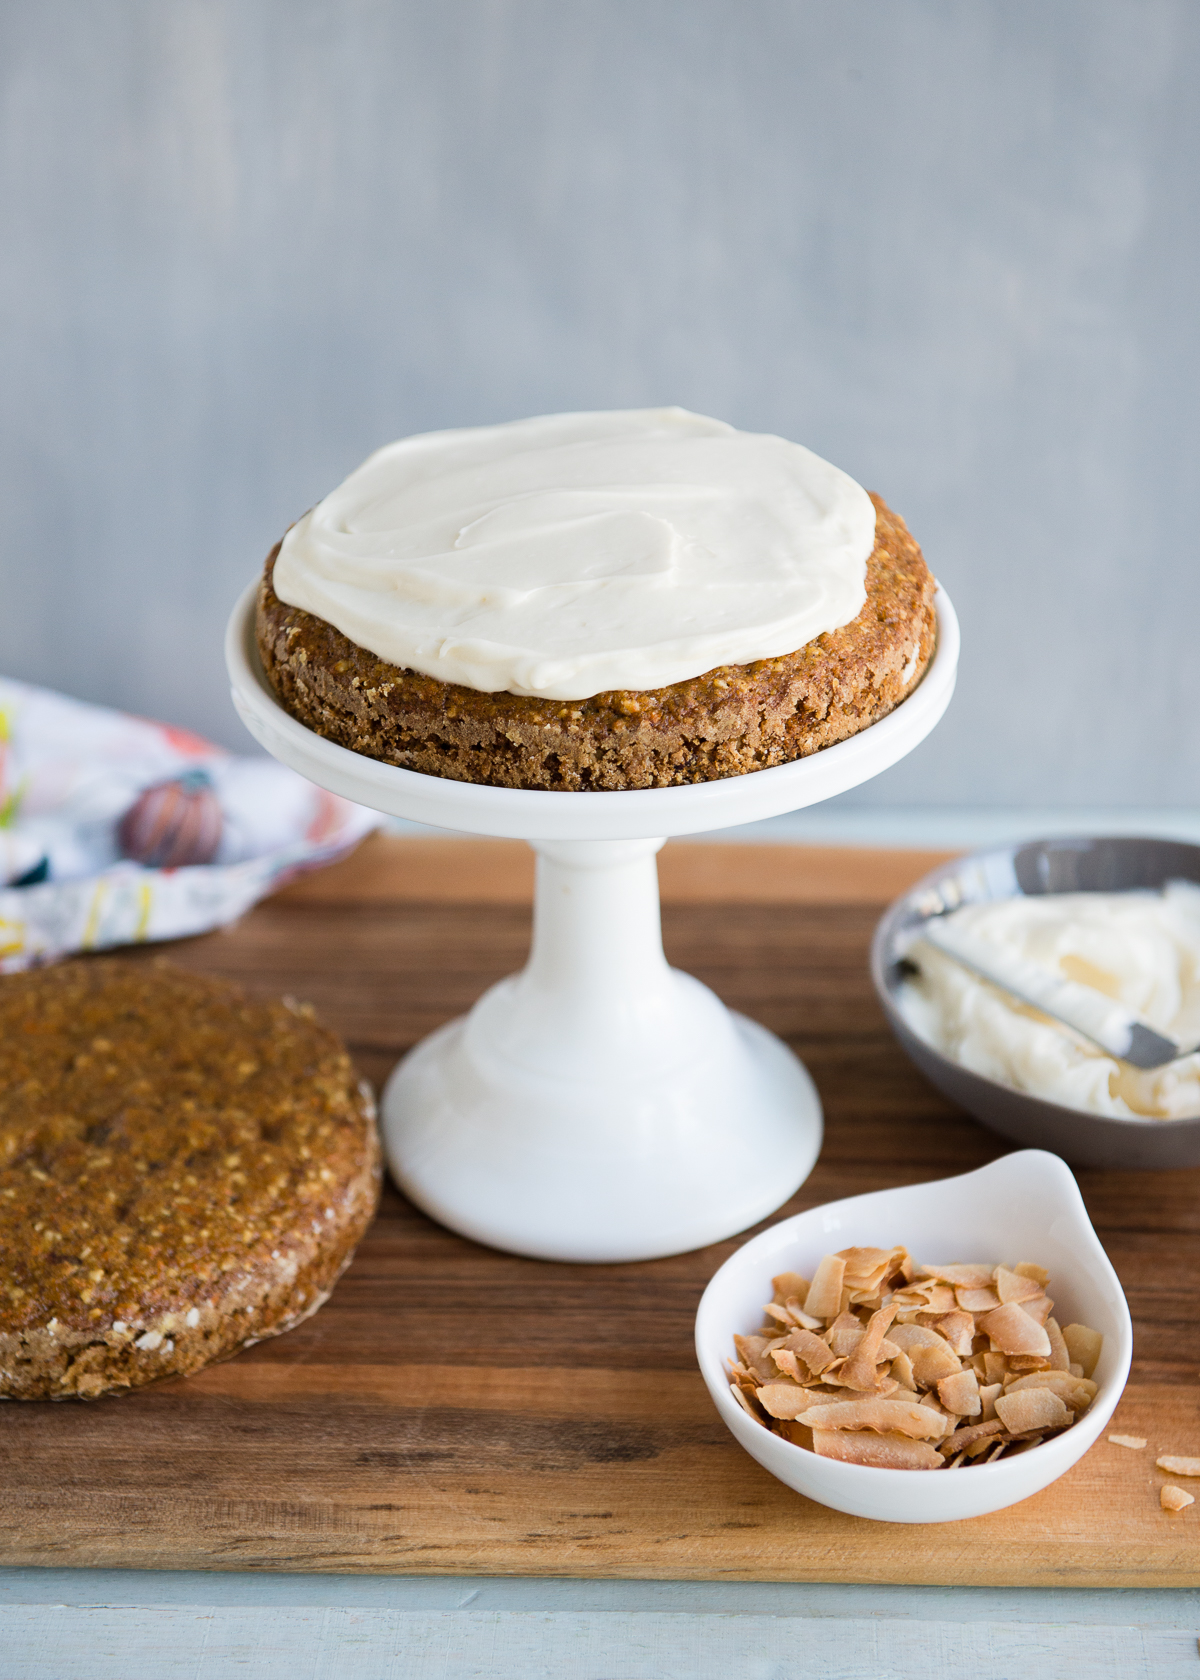 Mini Carrot Cake Sized Down And Perfect For Two People To Share